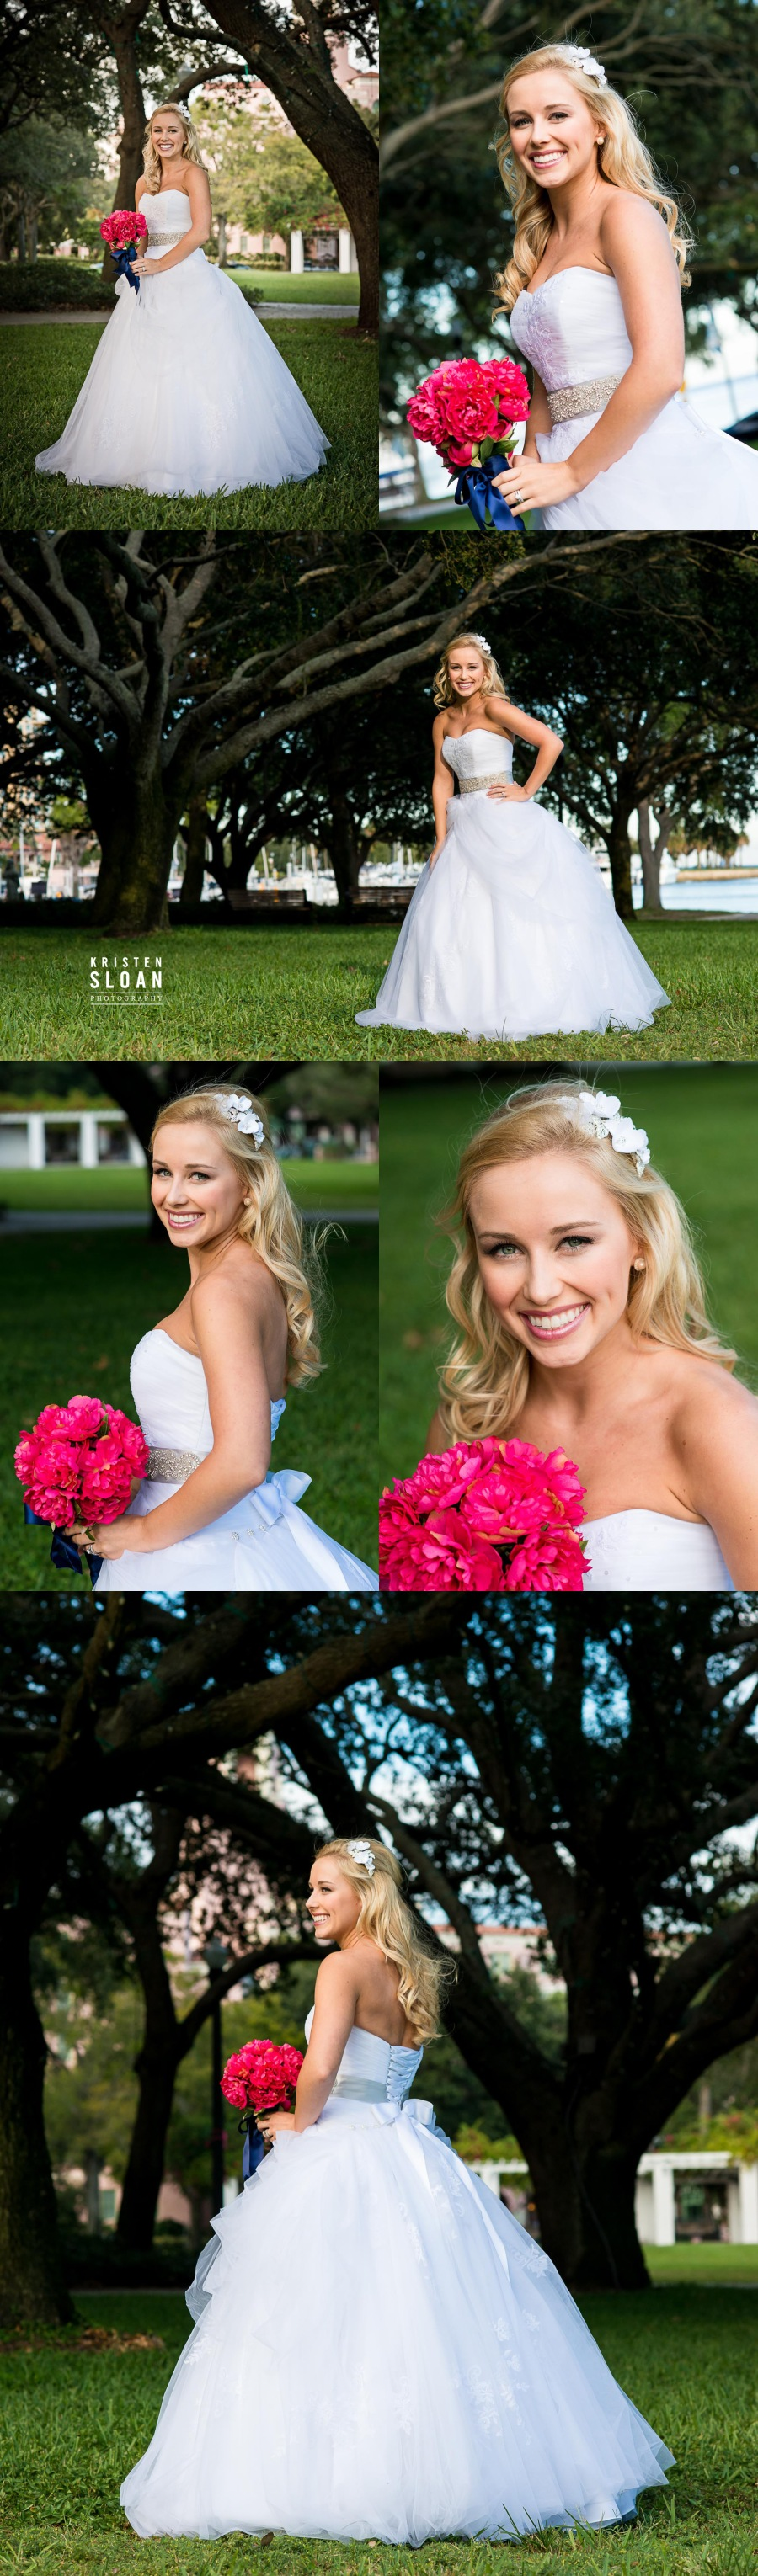 st petersburg fl bridal wedding photos